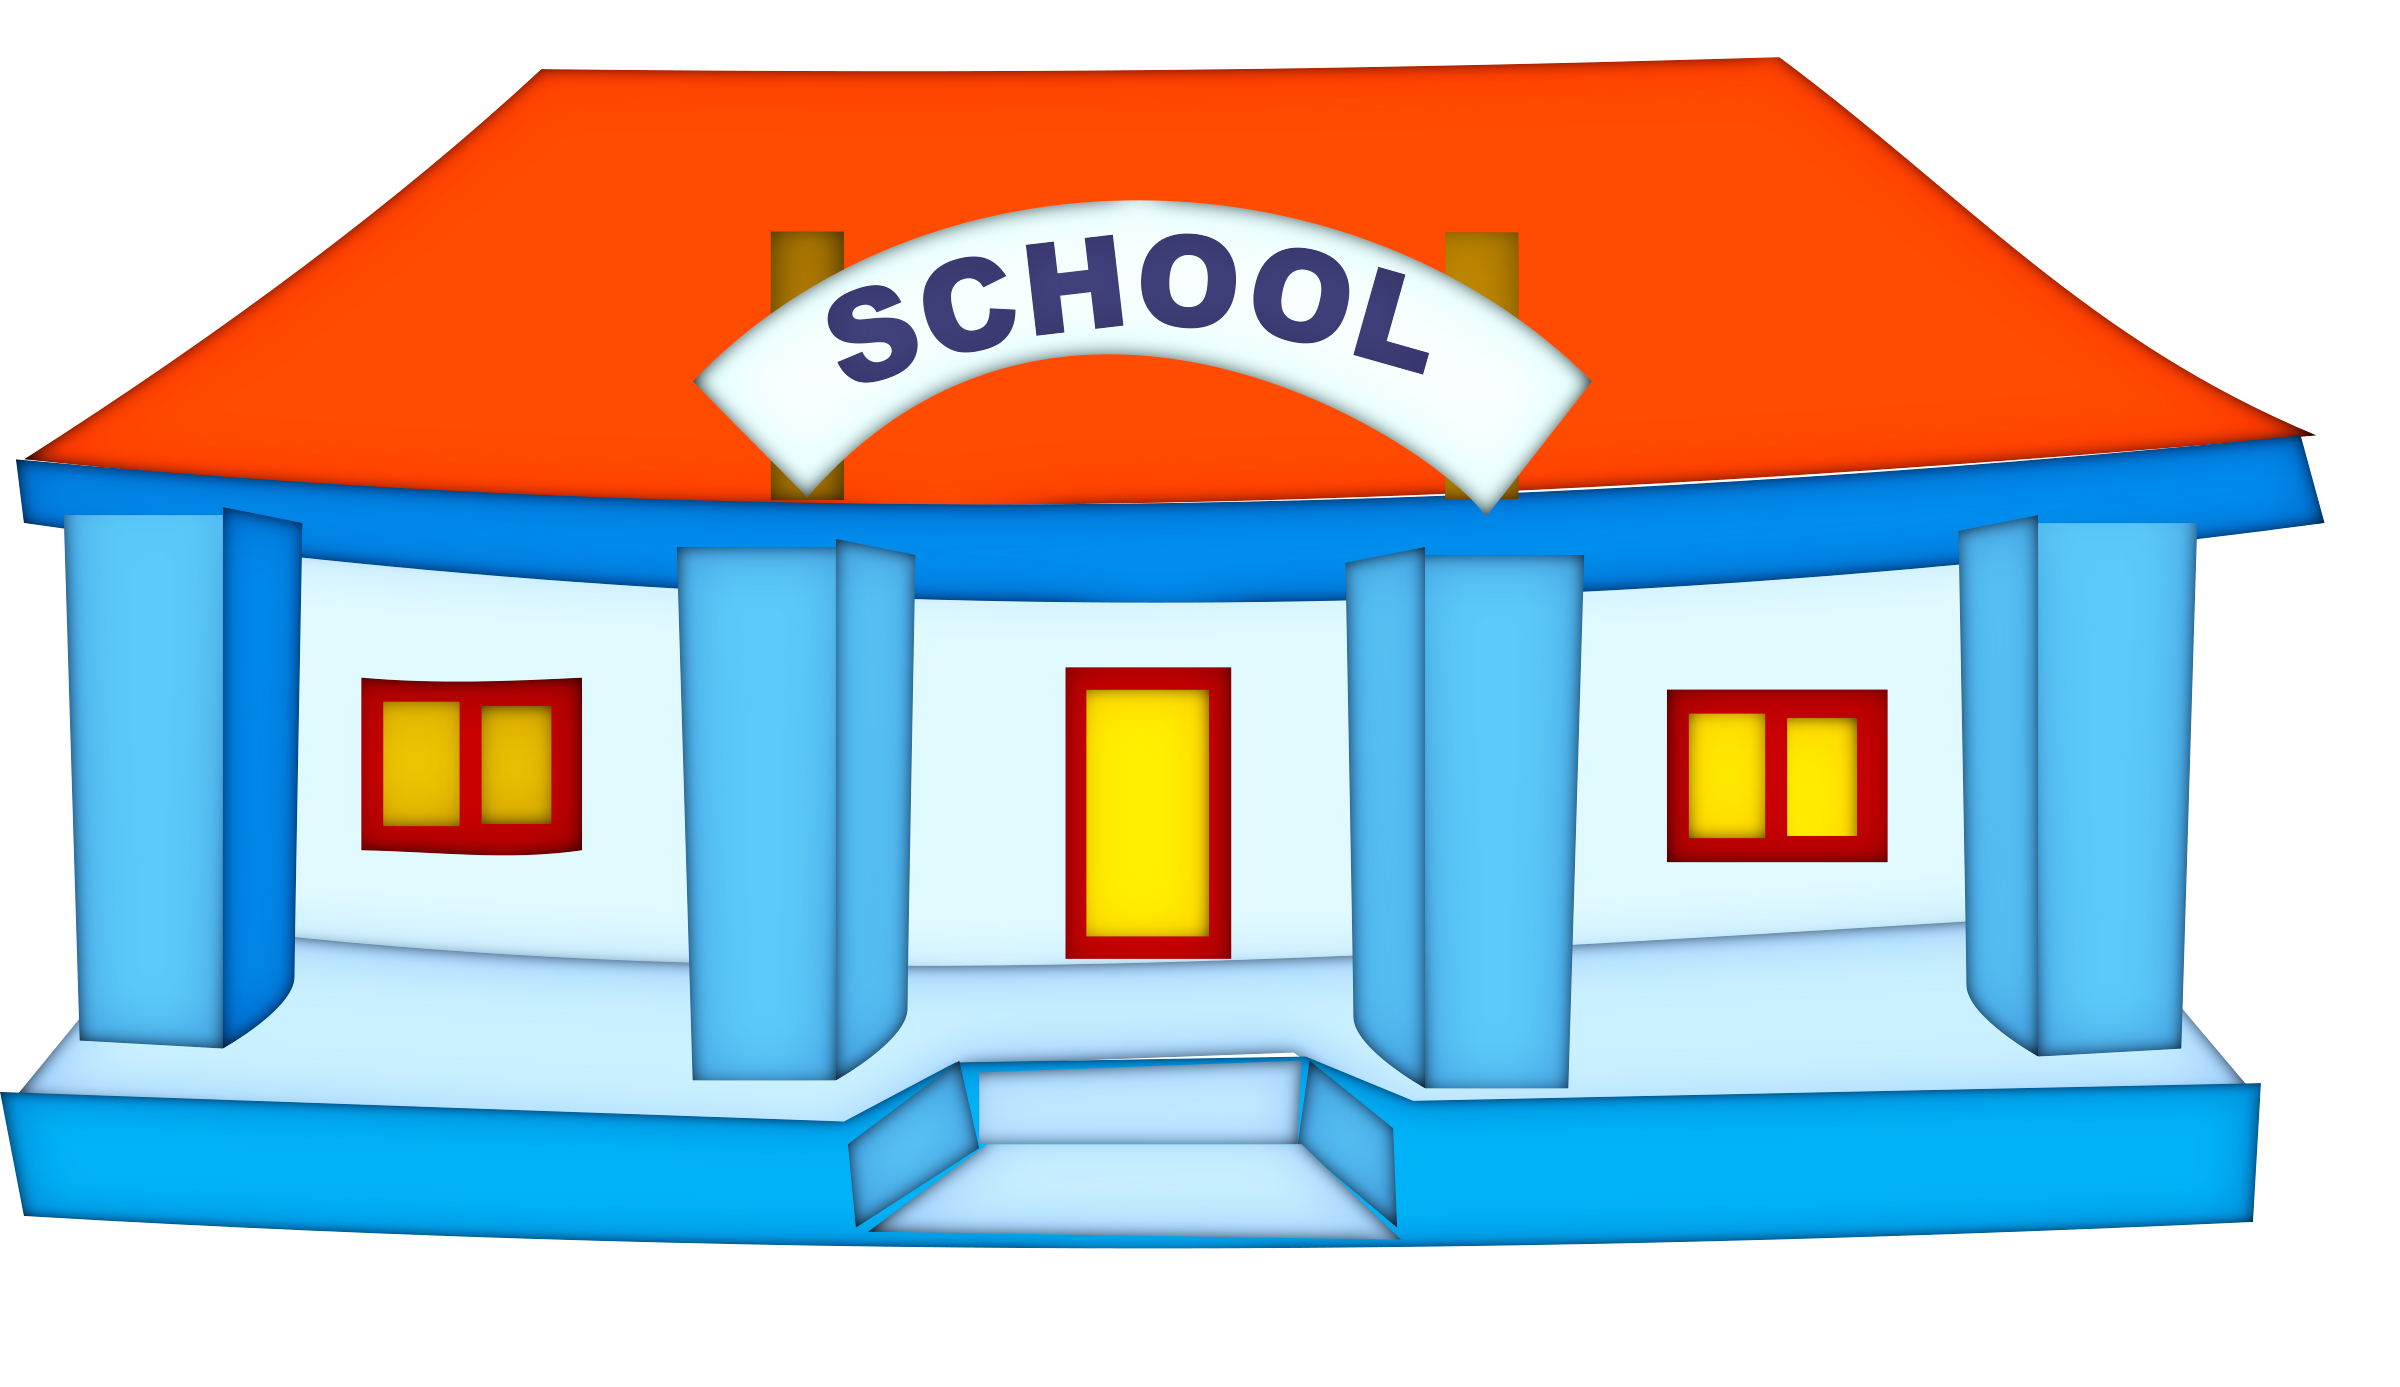 School building images clipart royalty free stock School building clipart png 1 » Clipart Station royalty free stock